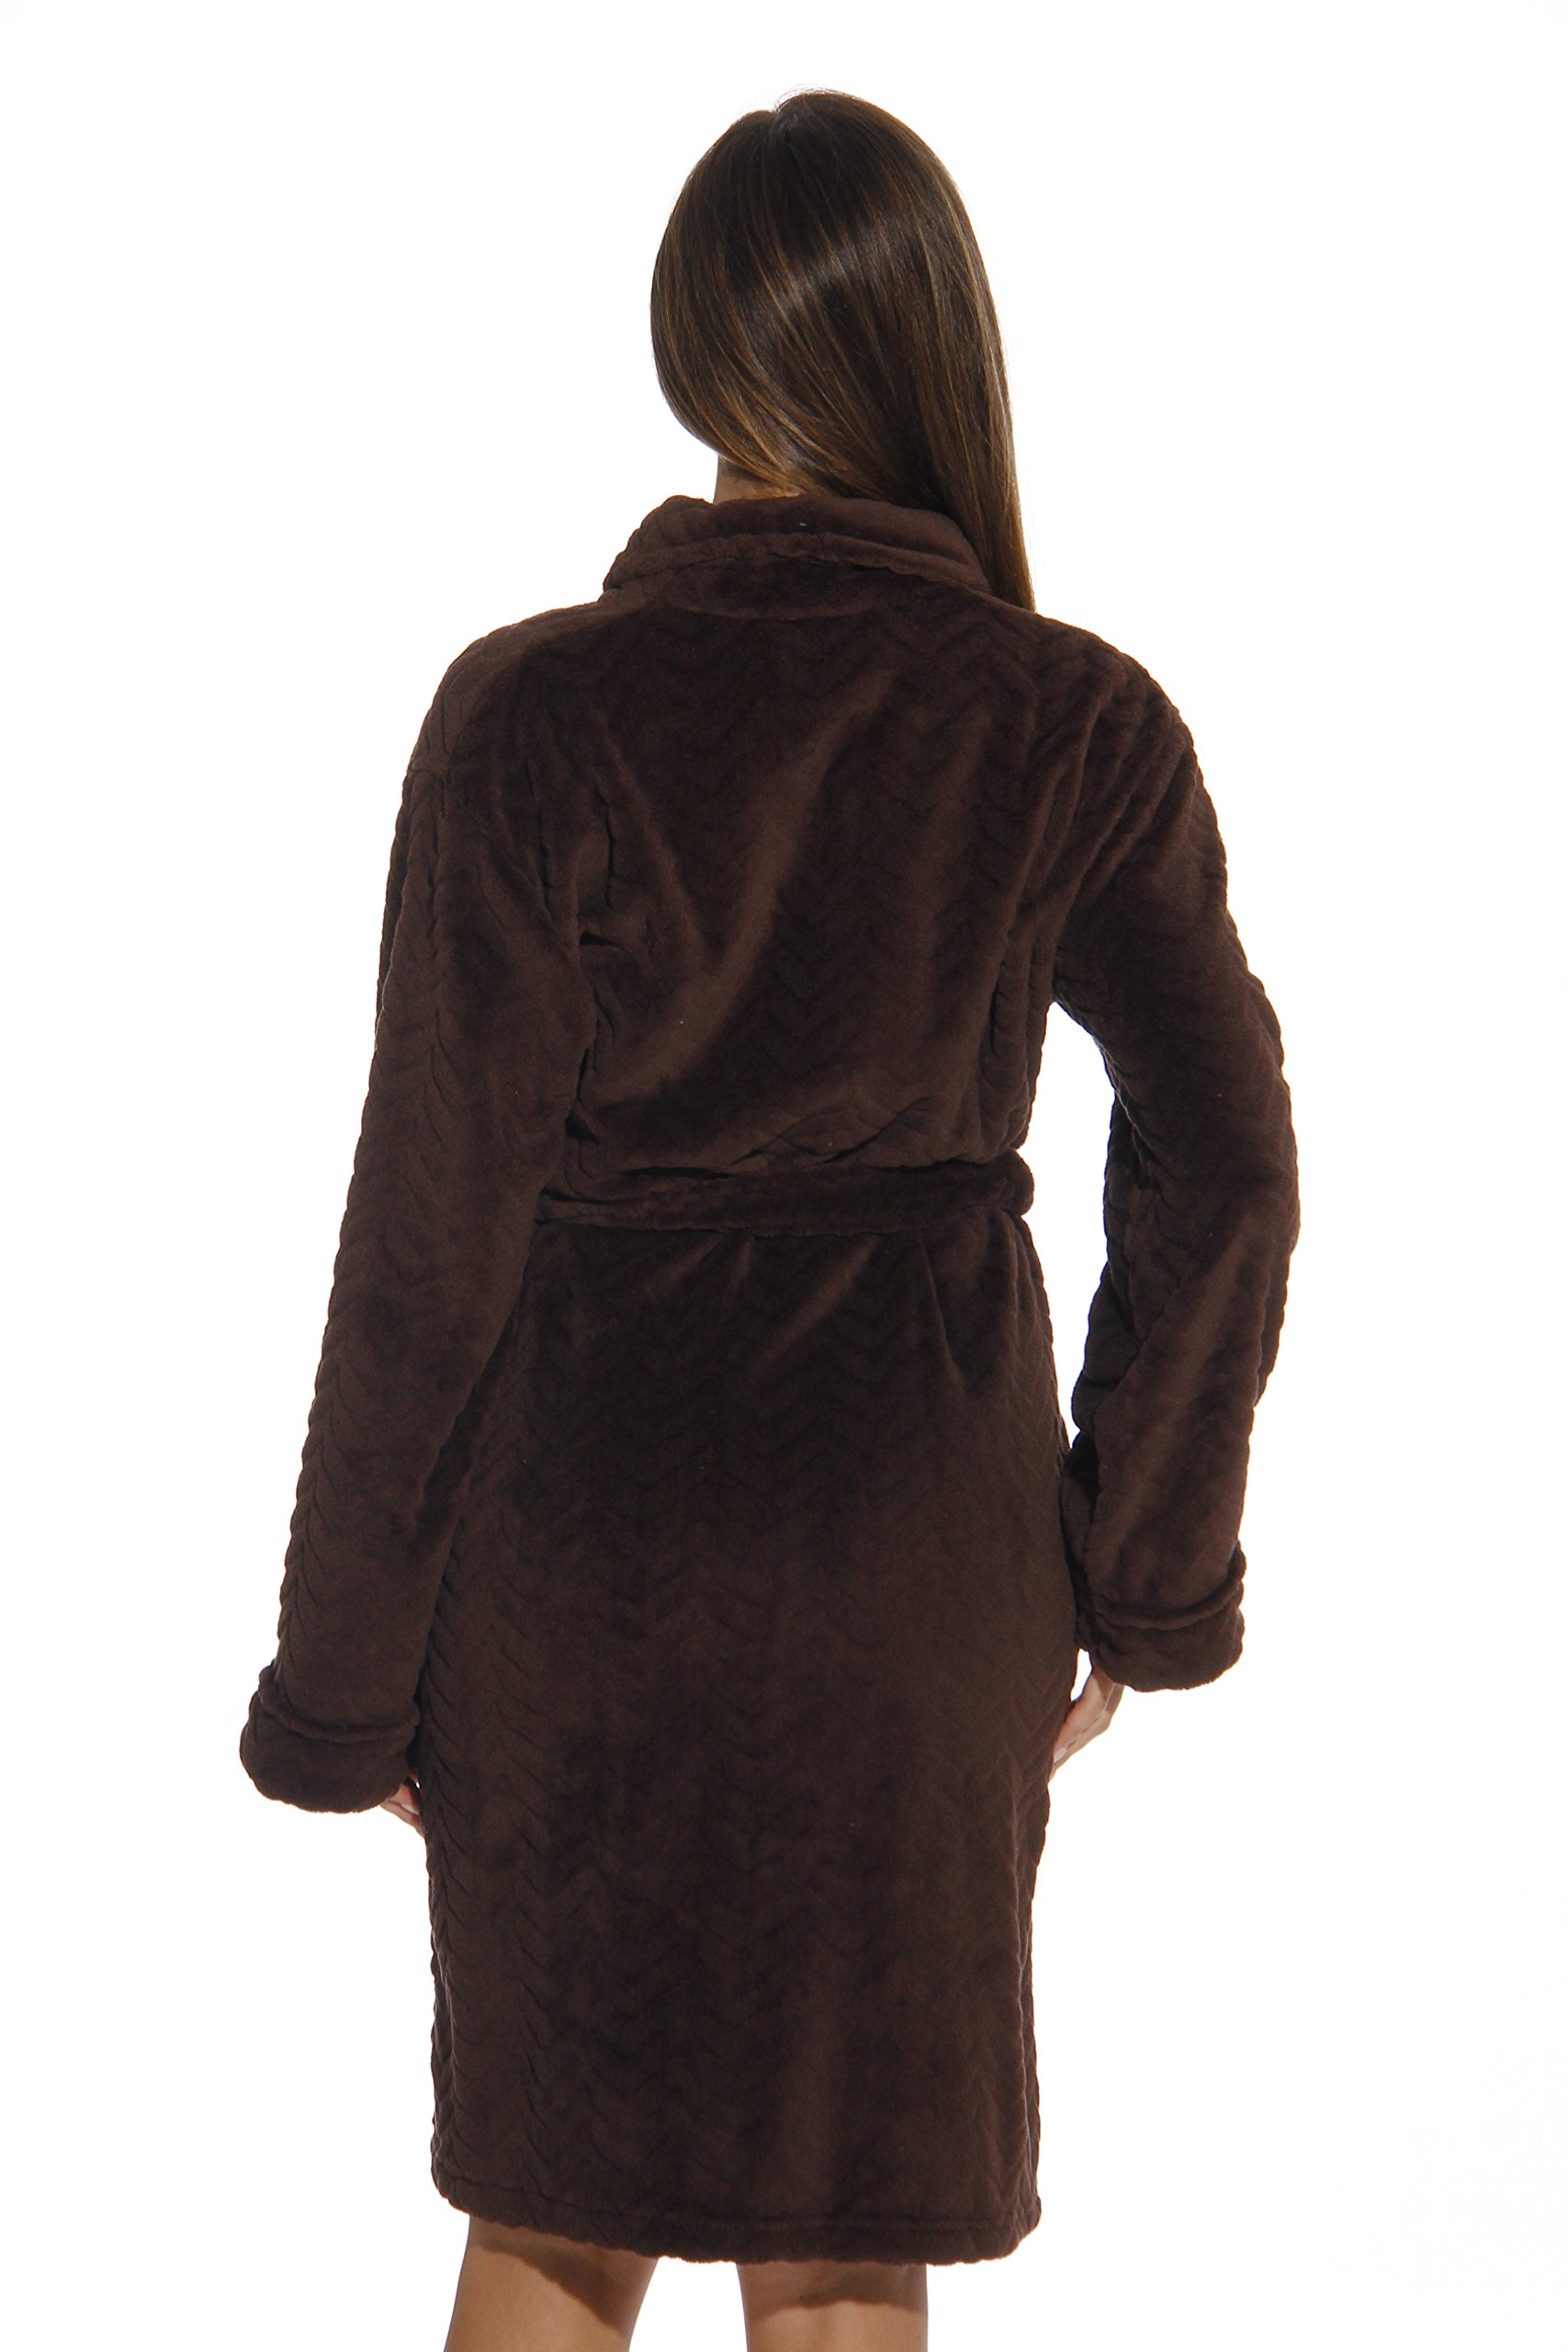 6312-Brown-L Just Love Kimono Robe / Bath Robes for Women by Just Love (Image #3)